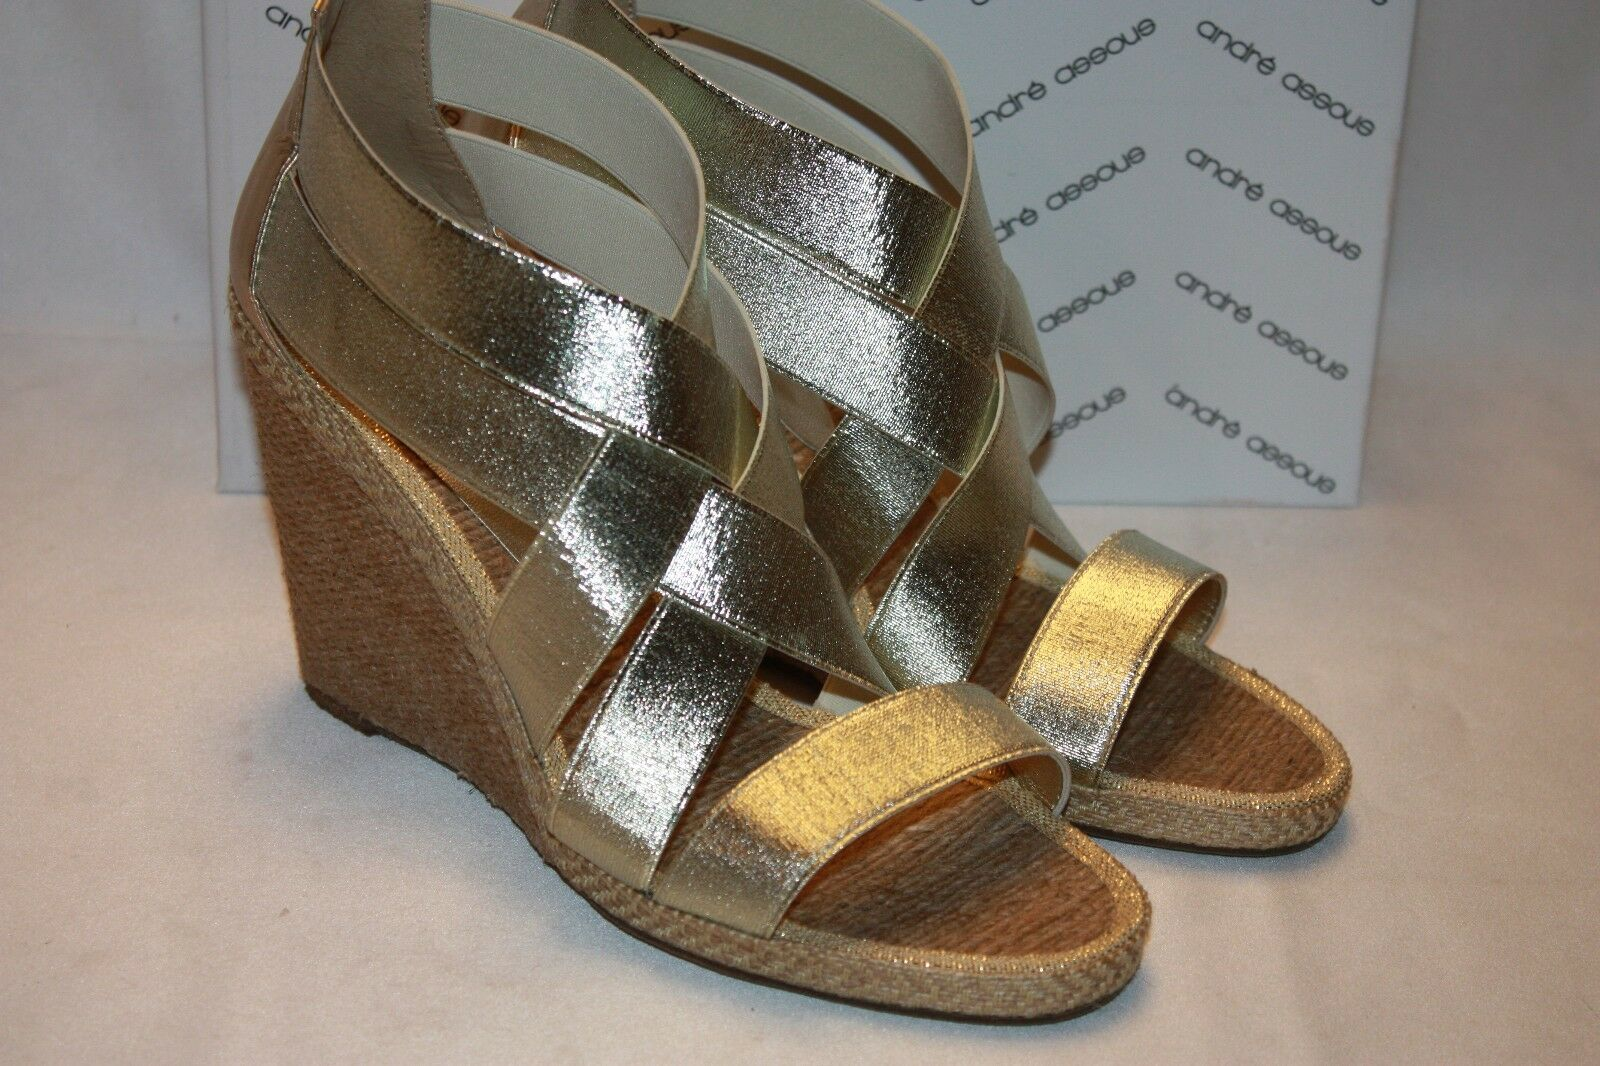 NEW  NIB ANDRE ASSOUS Platino Elasticized Straps Leather Jute Wedge Sandals  235